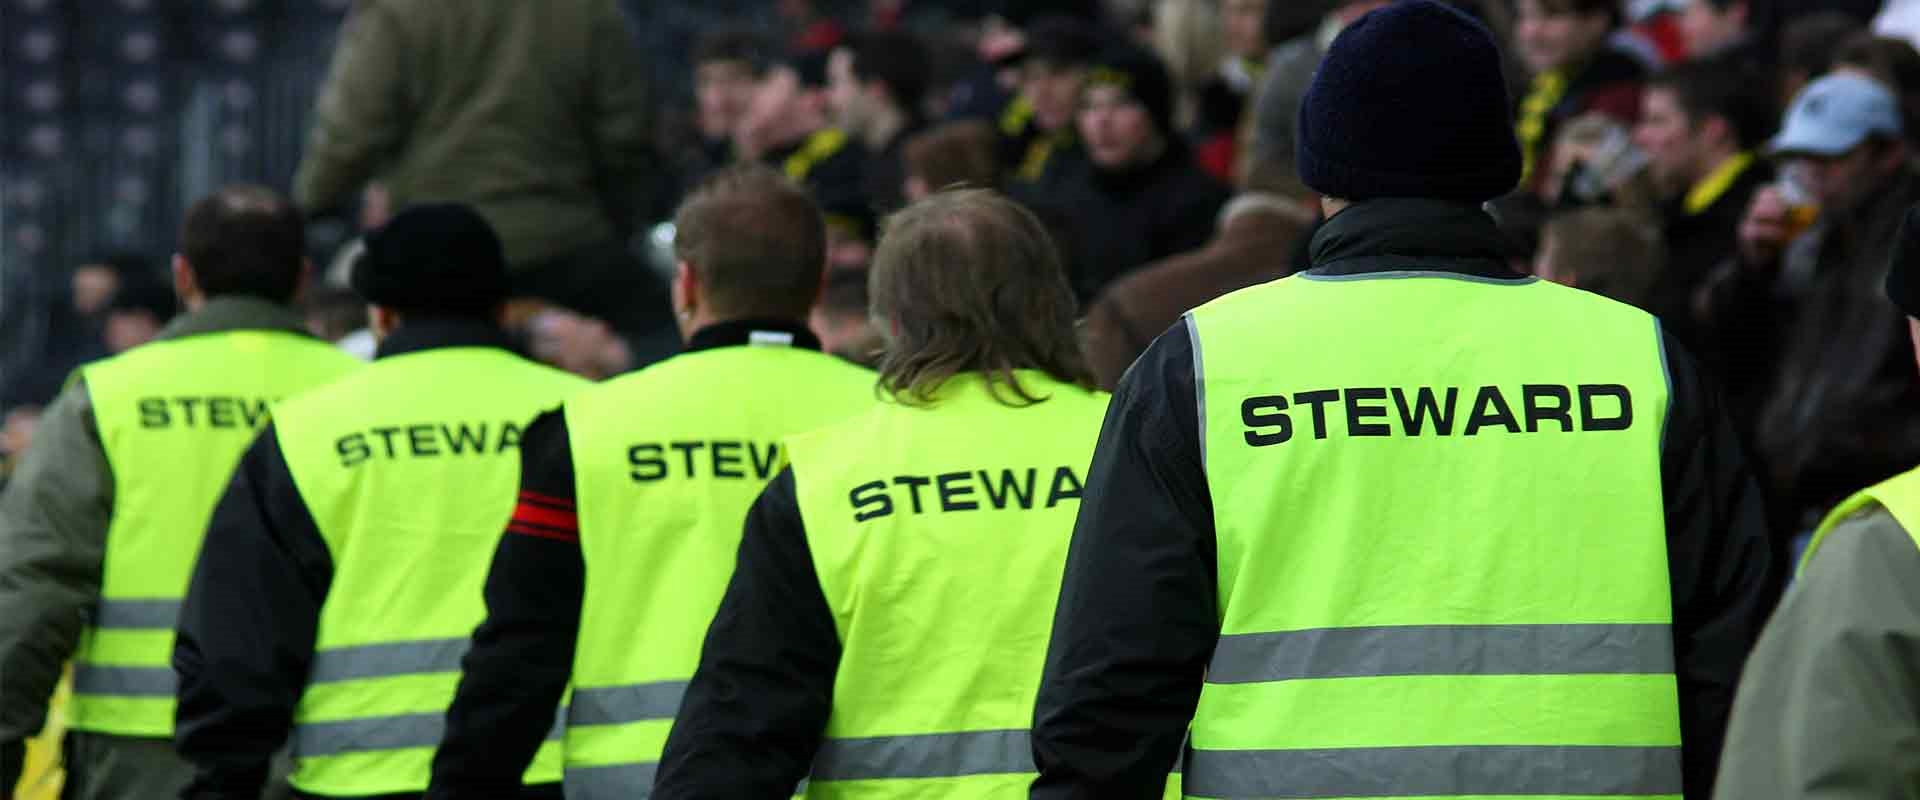 event-stewards-south-west-wales.jpg